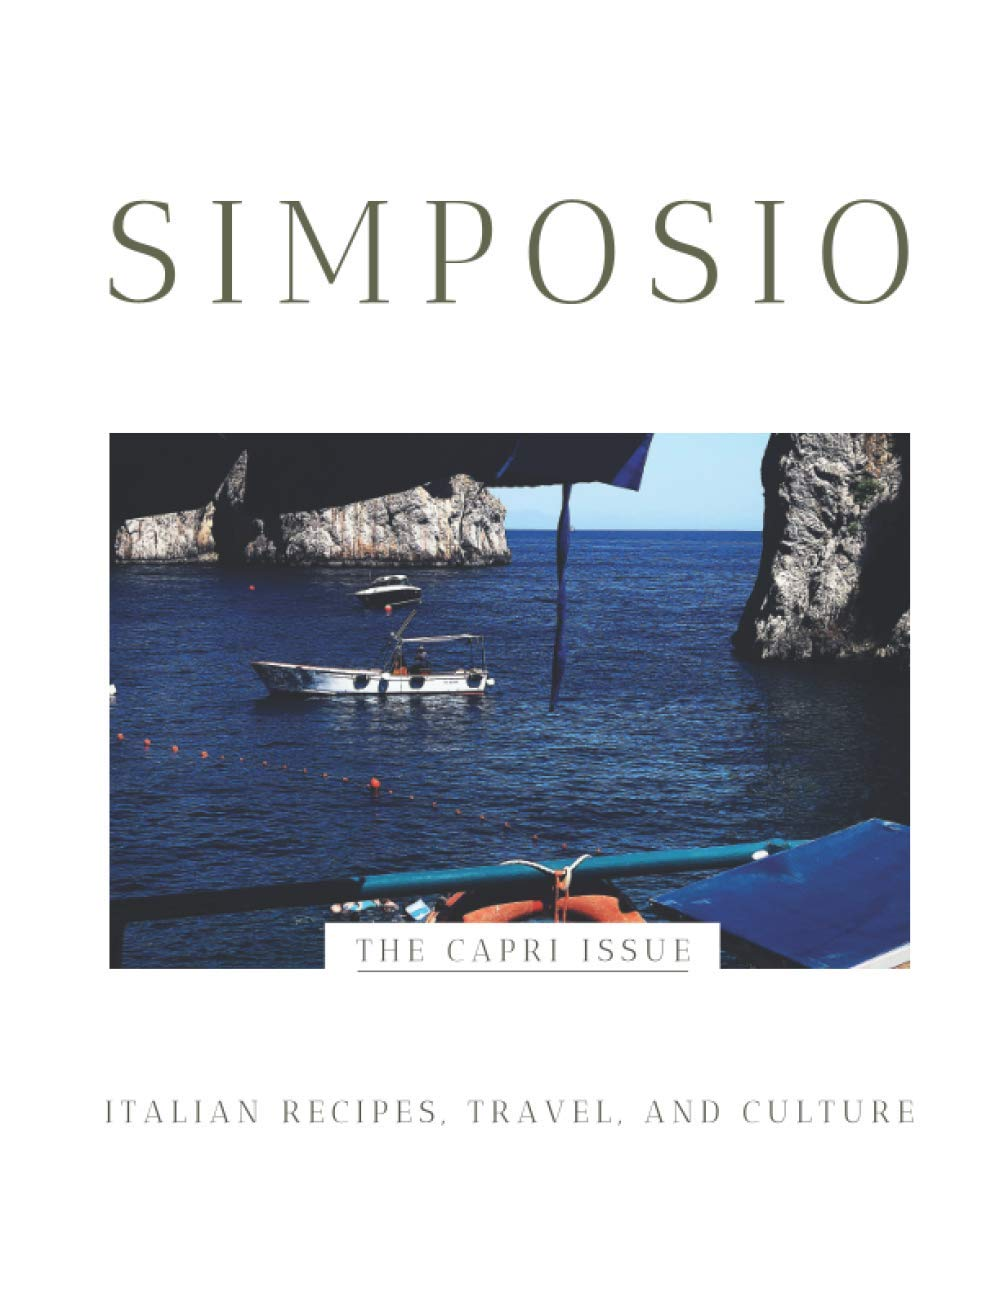 Image OfSimposio / Italian Recipes, Travel, And Culture: The Capri Issue